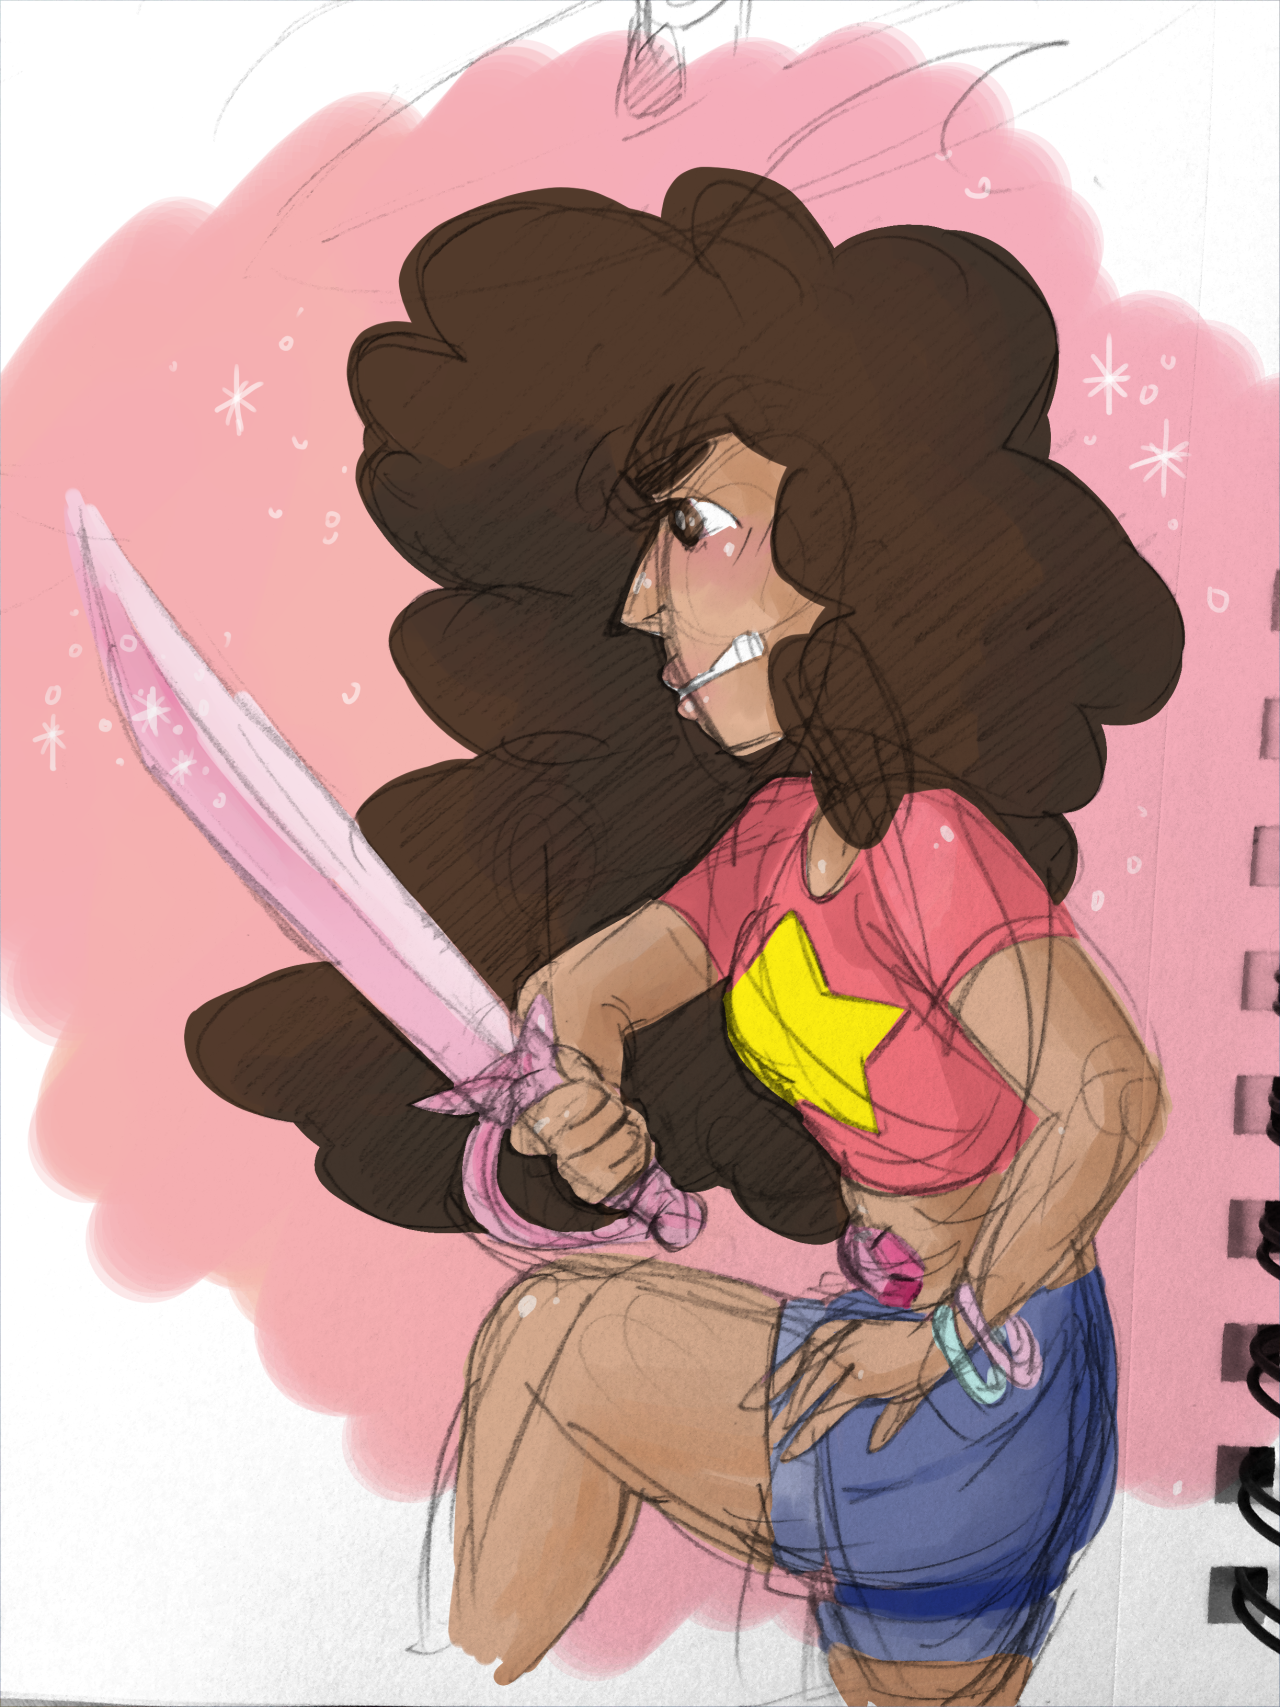 sorry this is terribly messy lmao but i just figured out how to extract lines and i was really excited! also i love stevonnie!!!